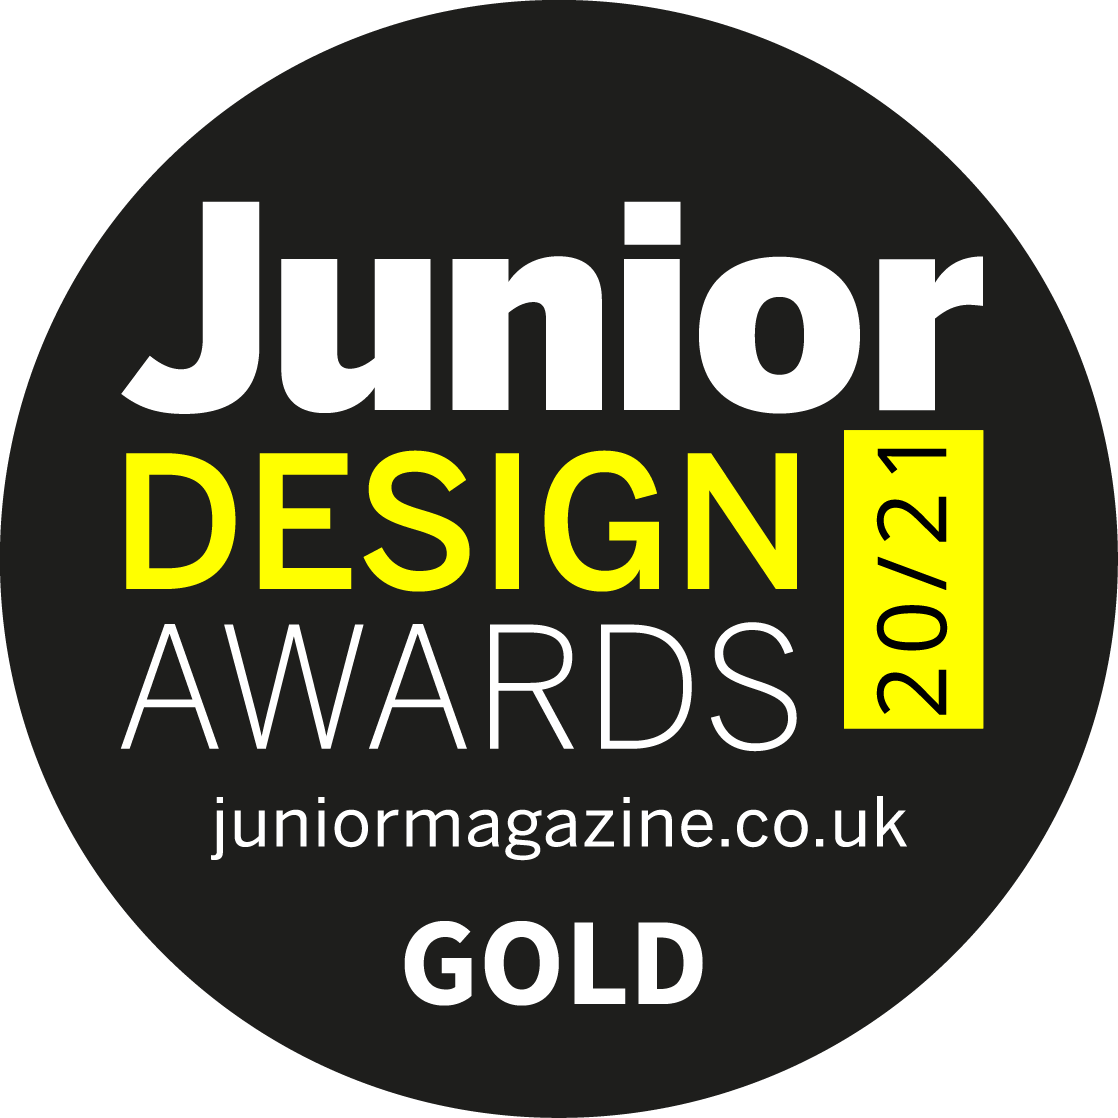 Winner of Best Baby Feeding Design Junior Design Awards 2020